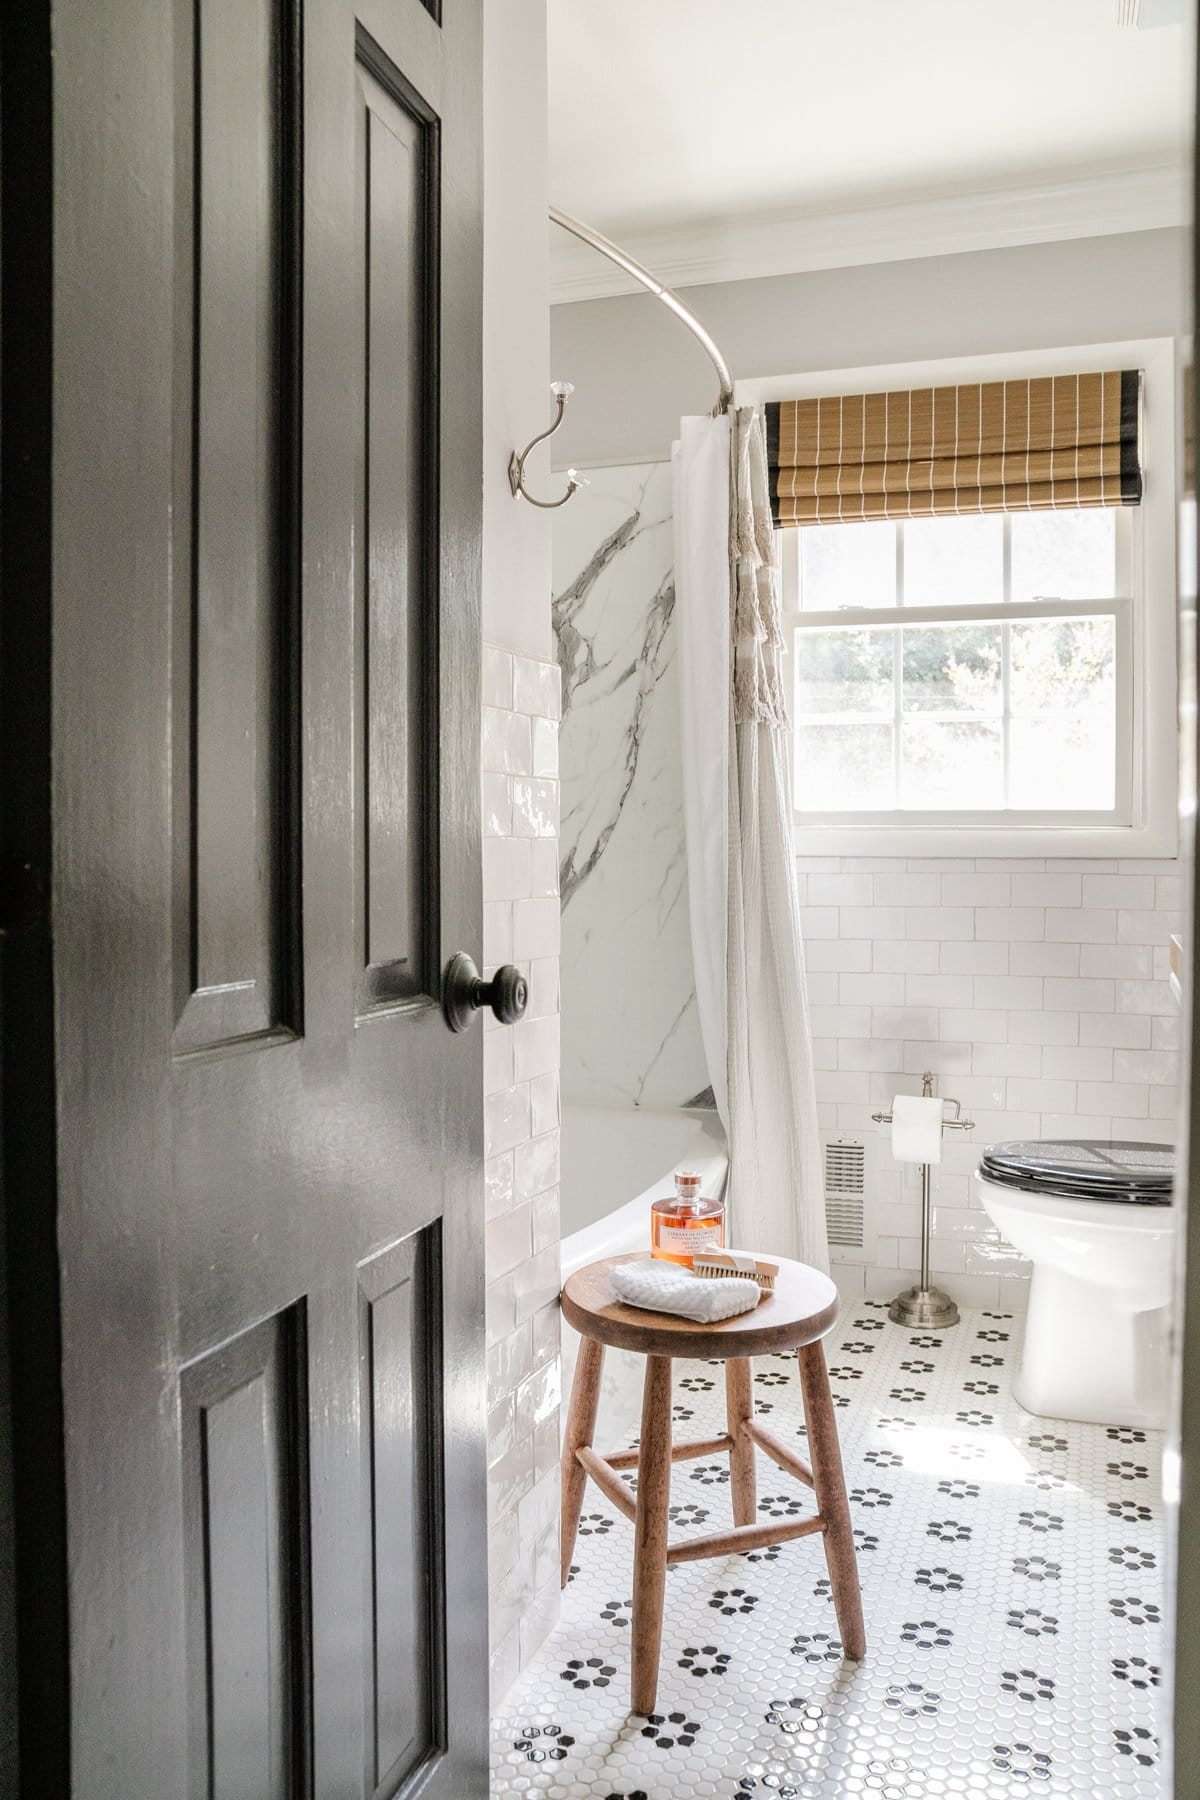 black and white bathroom decor with retro tile and stool beside the tub